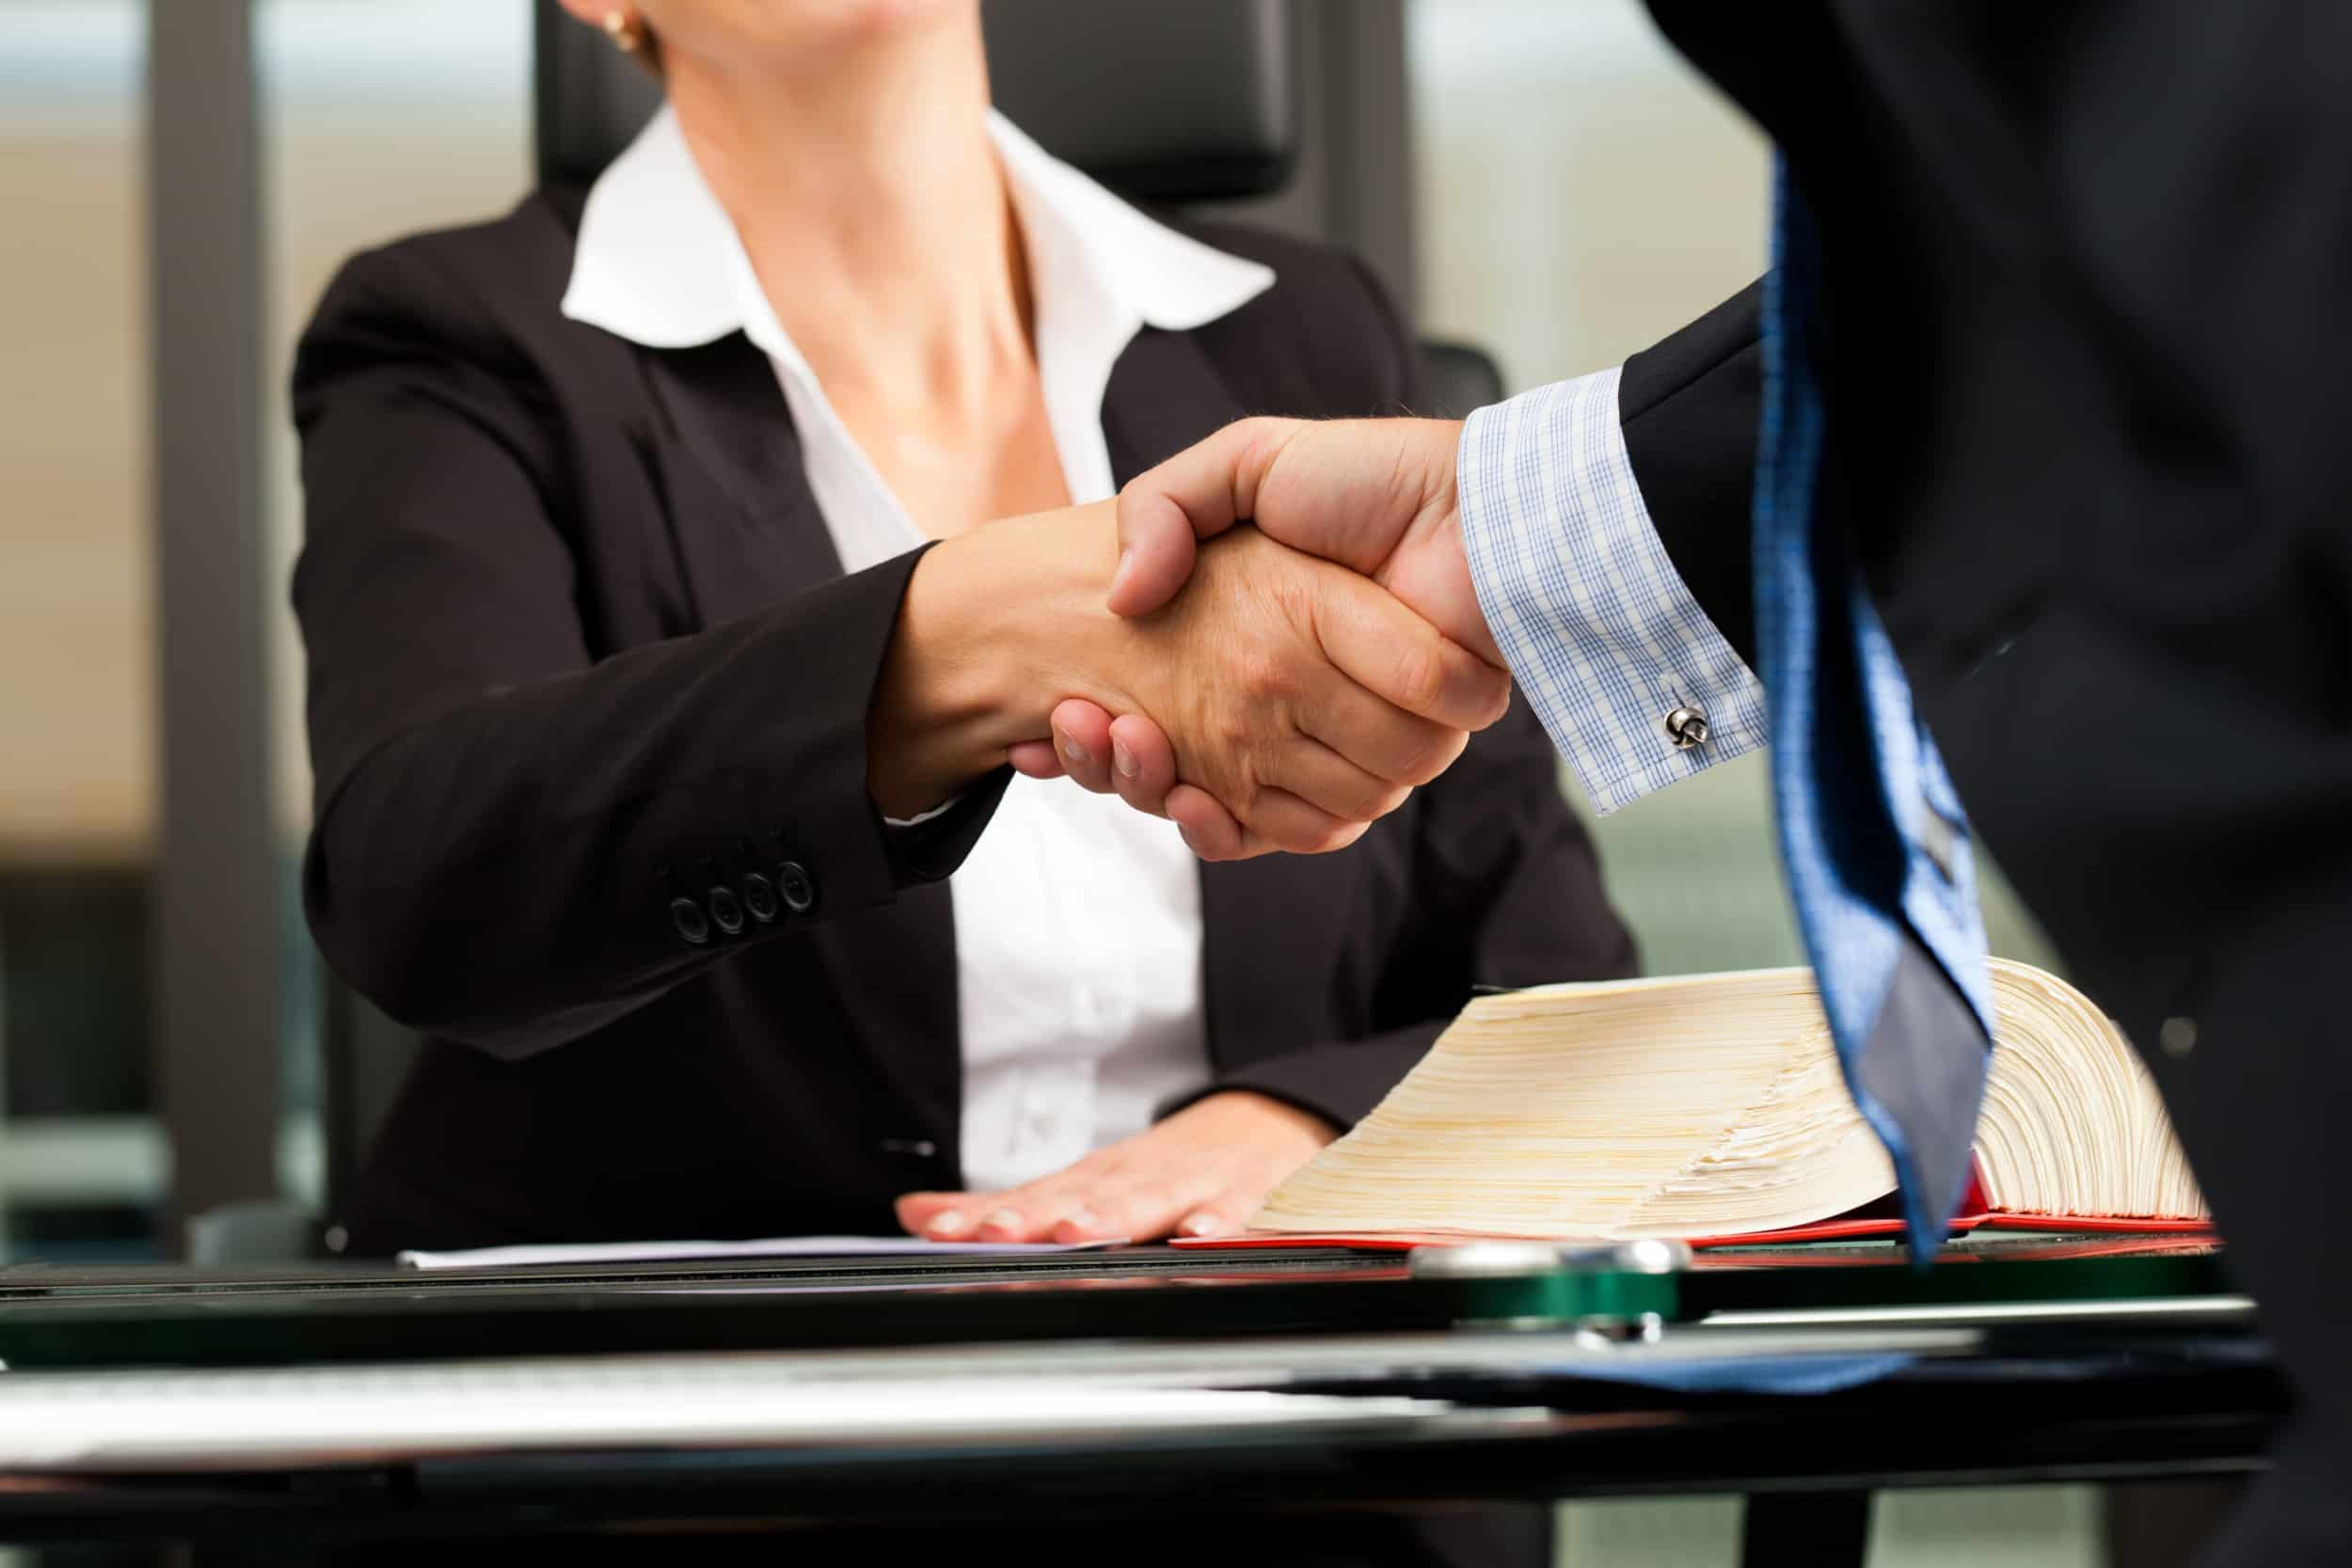 Female lawyer or notary